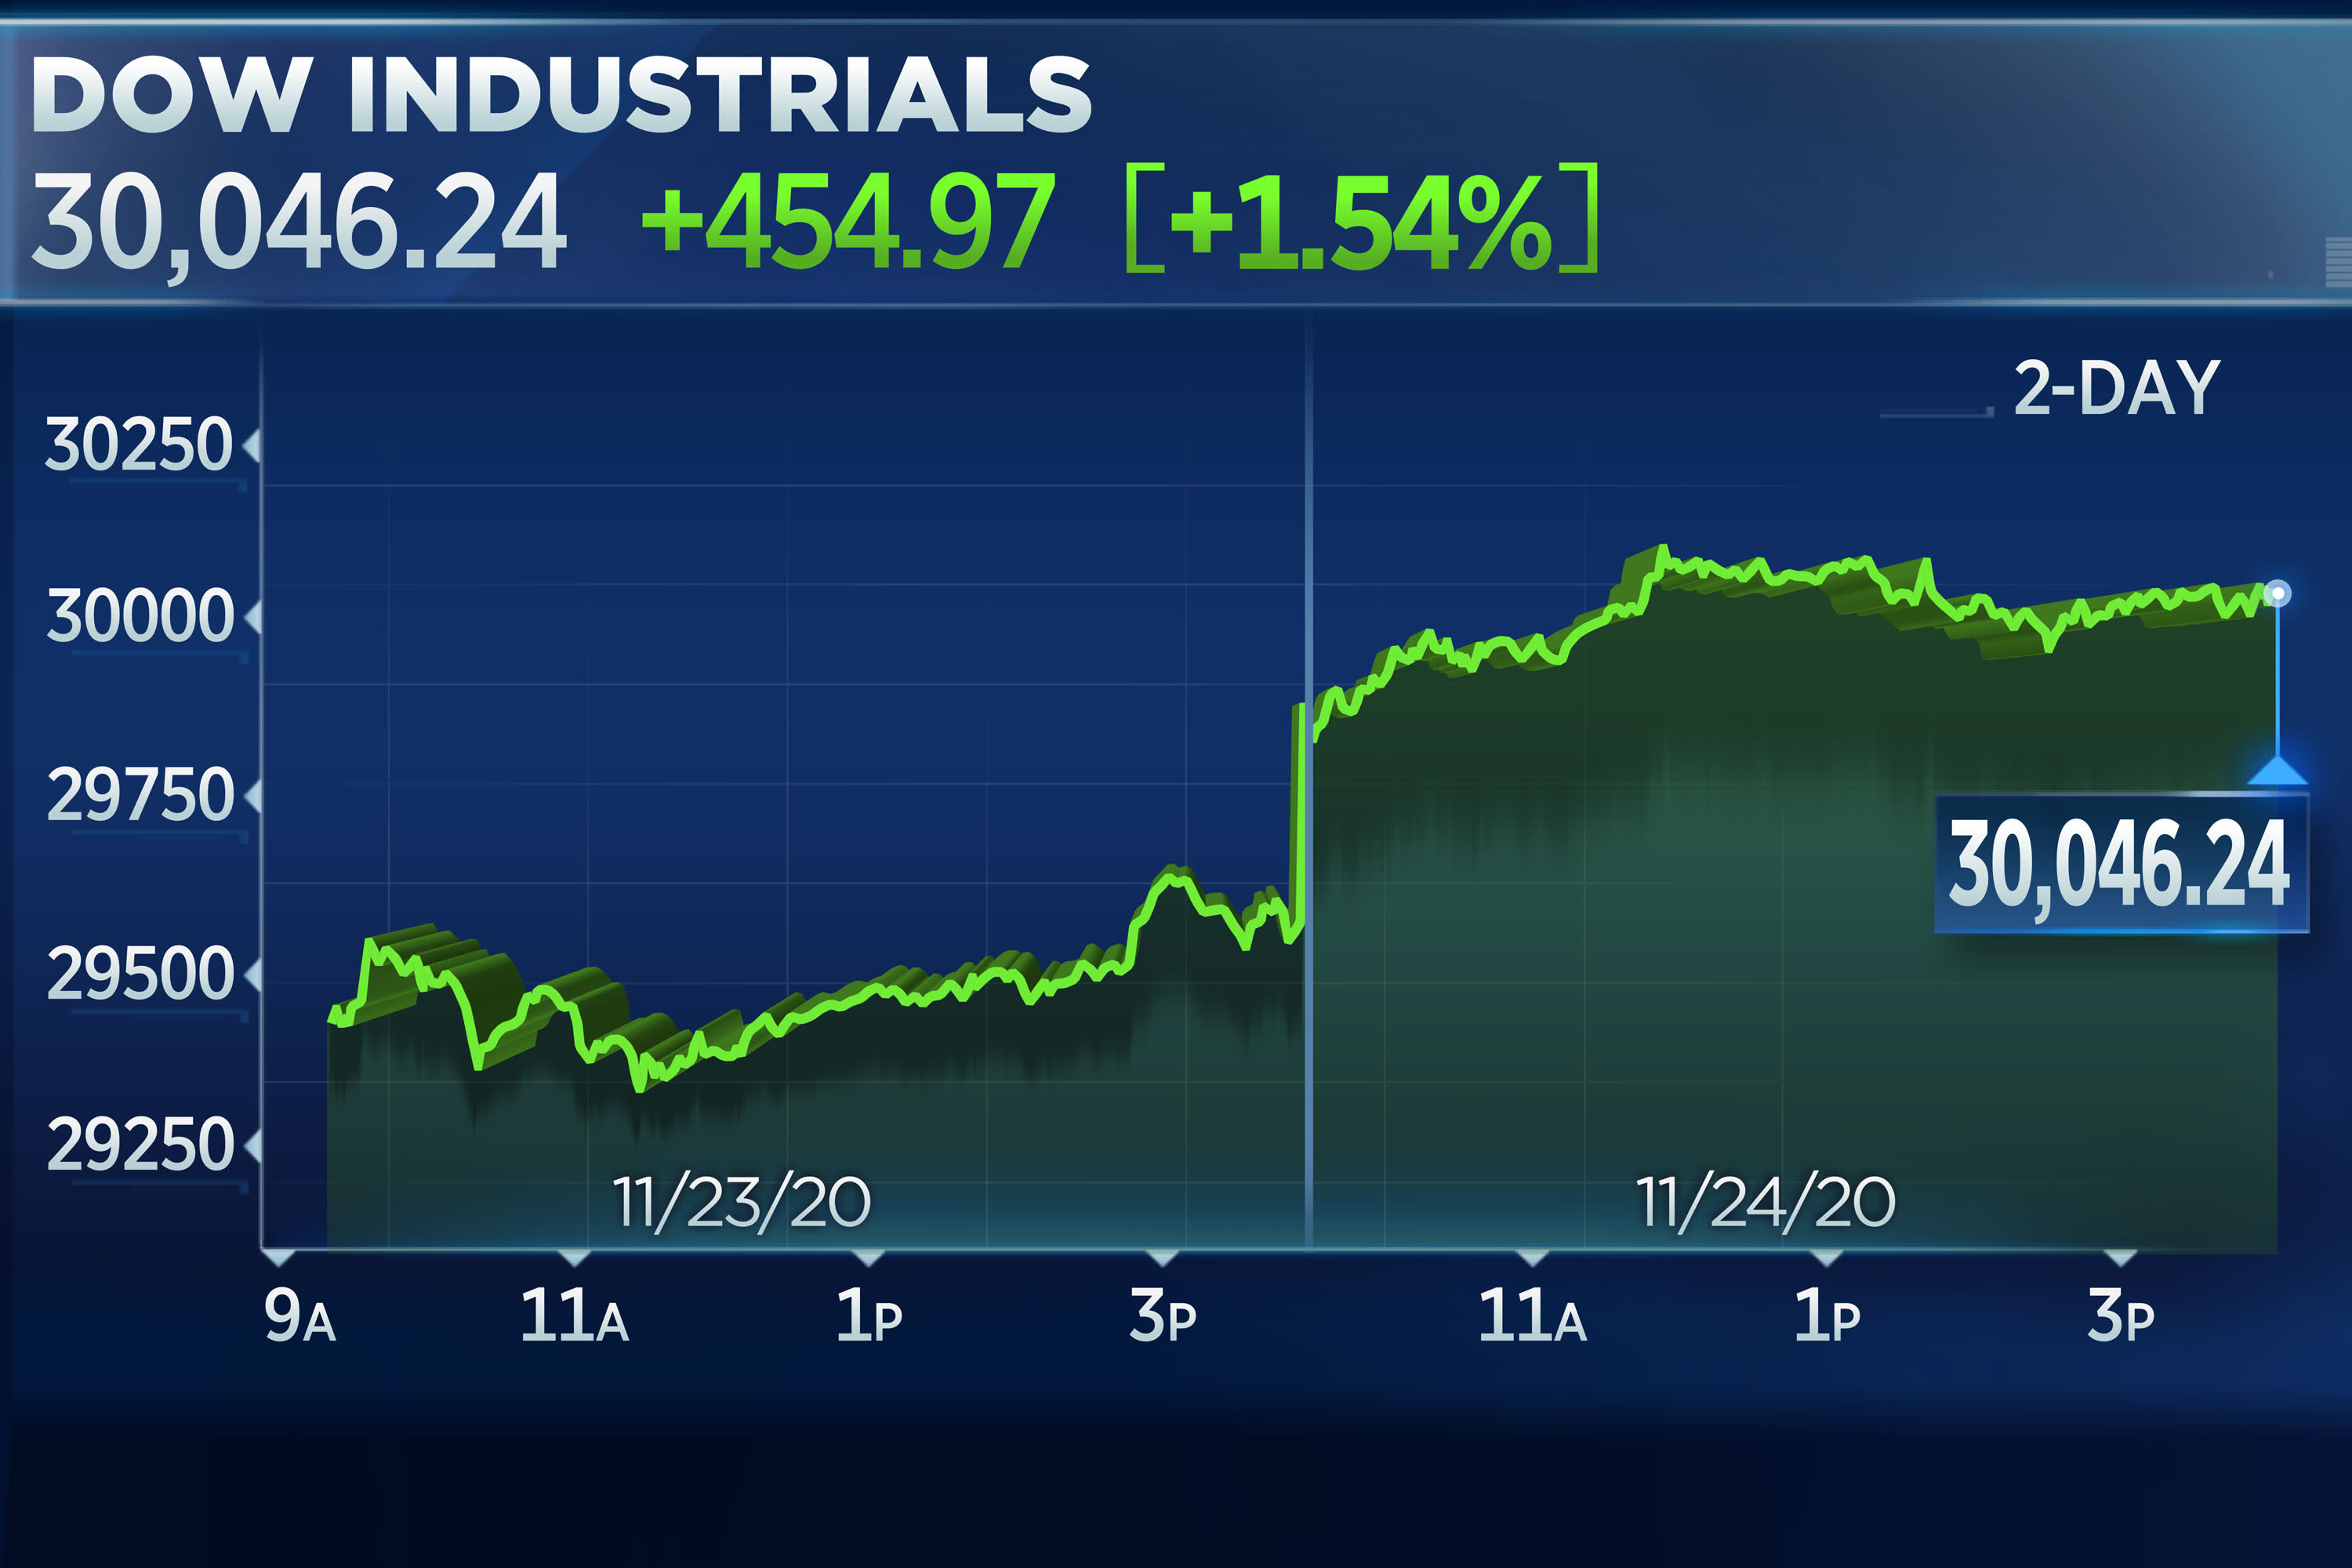 Dow rallies more than 400 points to surpass 30,000 for the first time